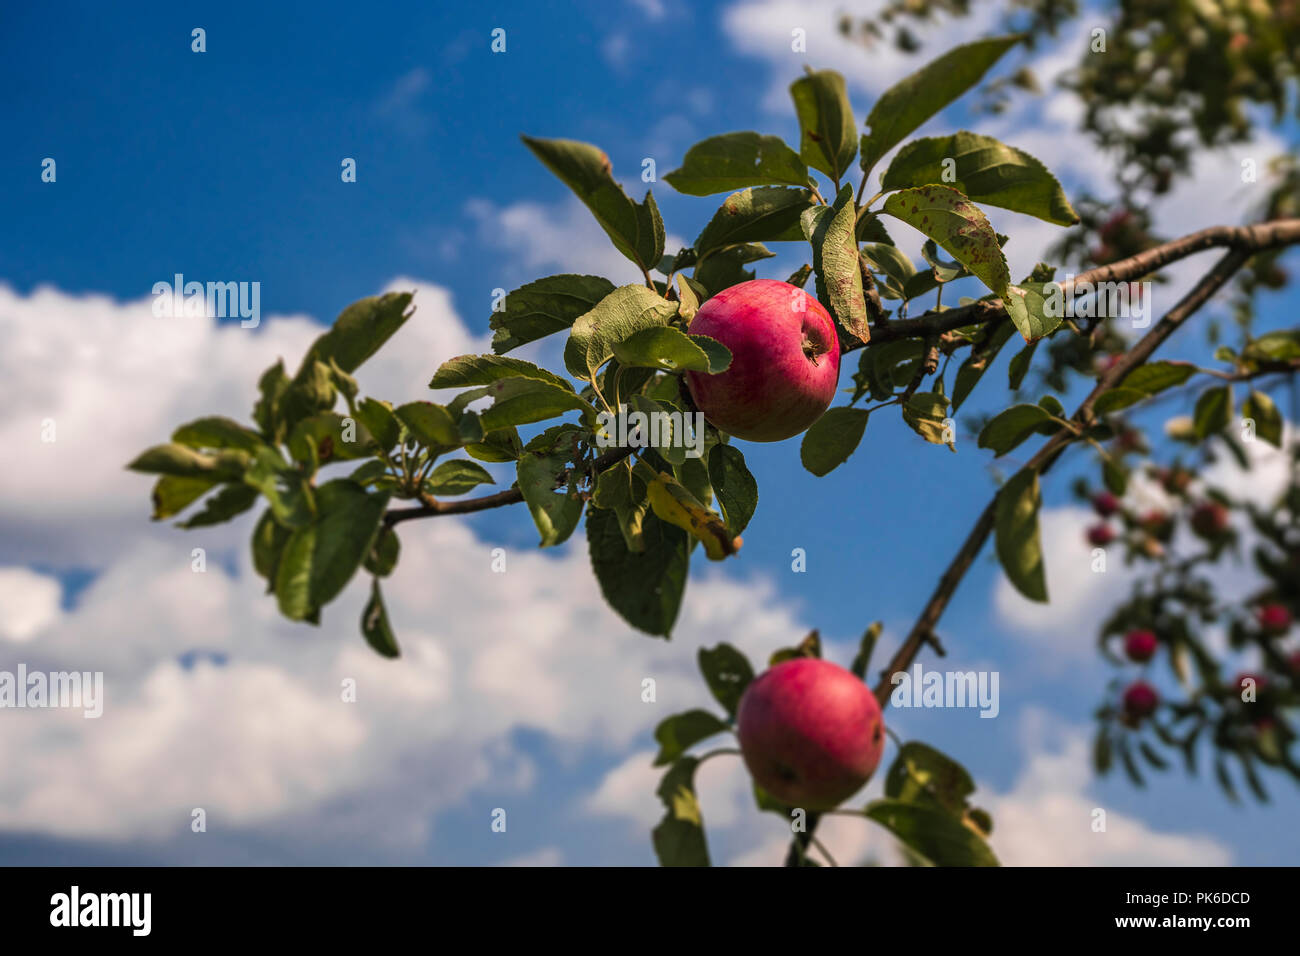 Apples on a tree branch. - Stock Image